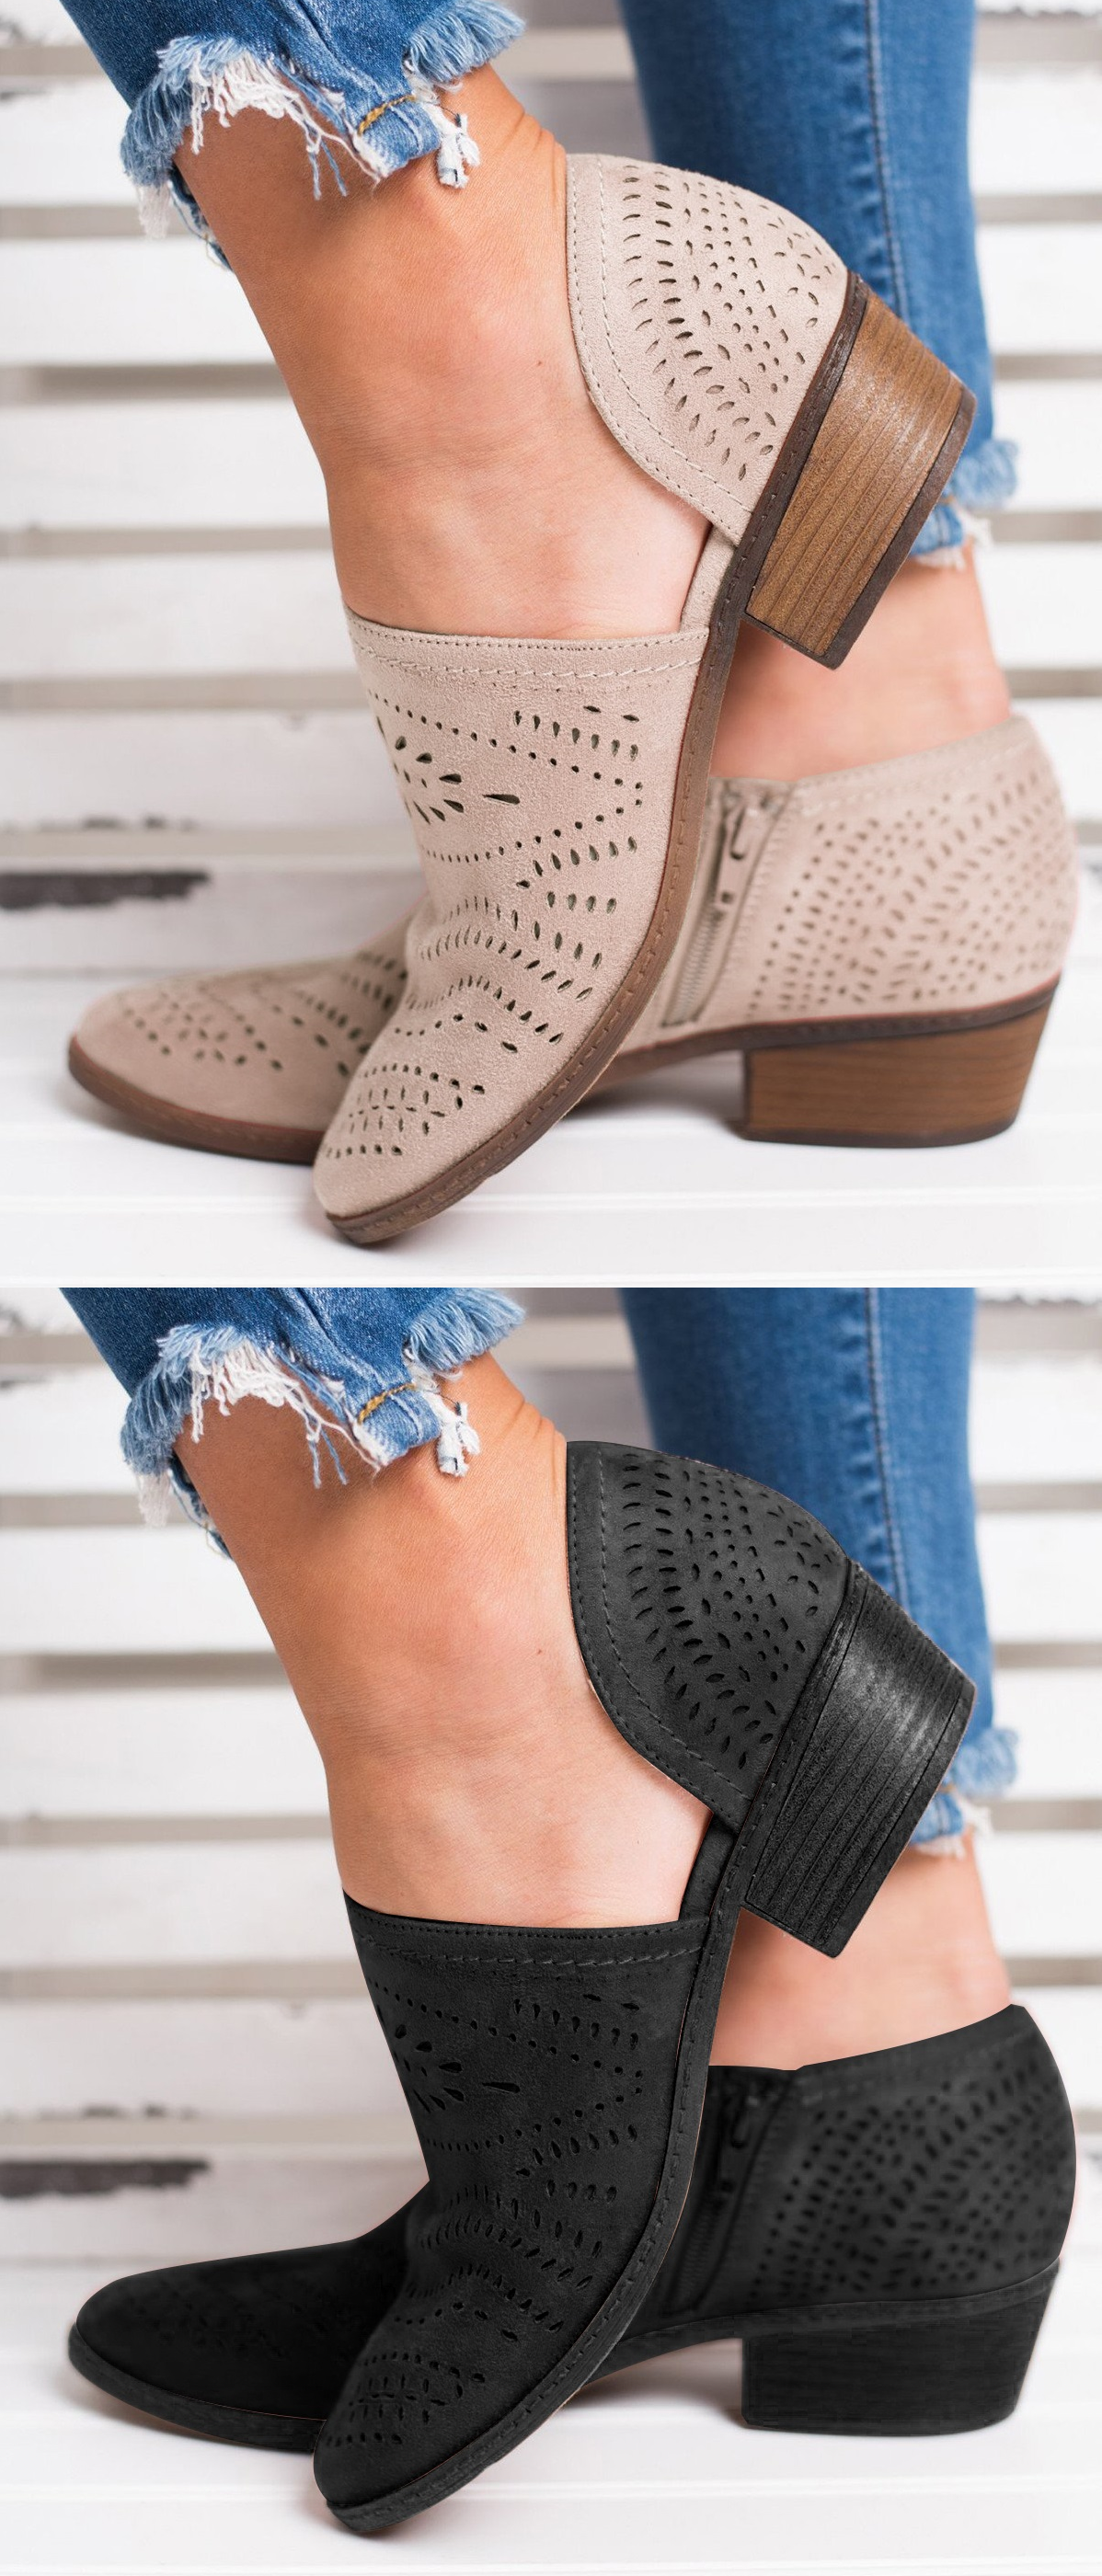 fc8d06f65a7f  37.99 USD Sale! Free Shipping! Shop Now! Hollow-out Low Heel Cutout  Booties Faux Suede Zipper Ankle Boots